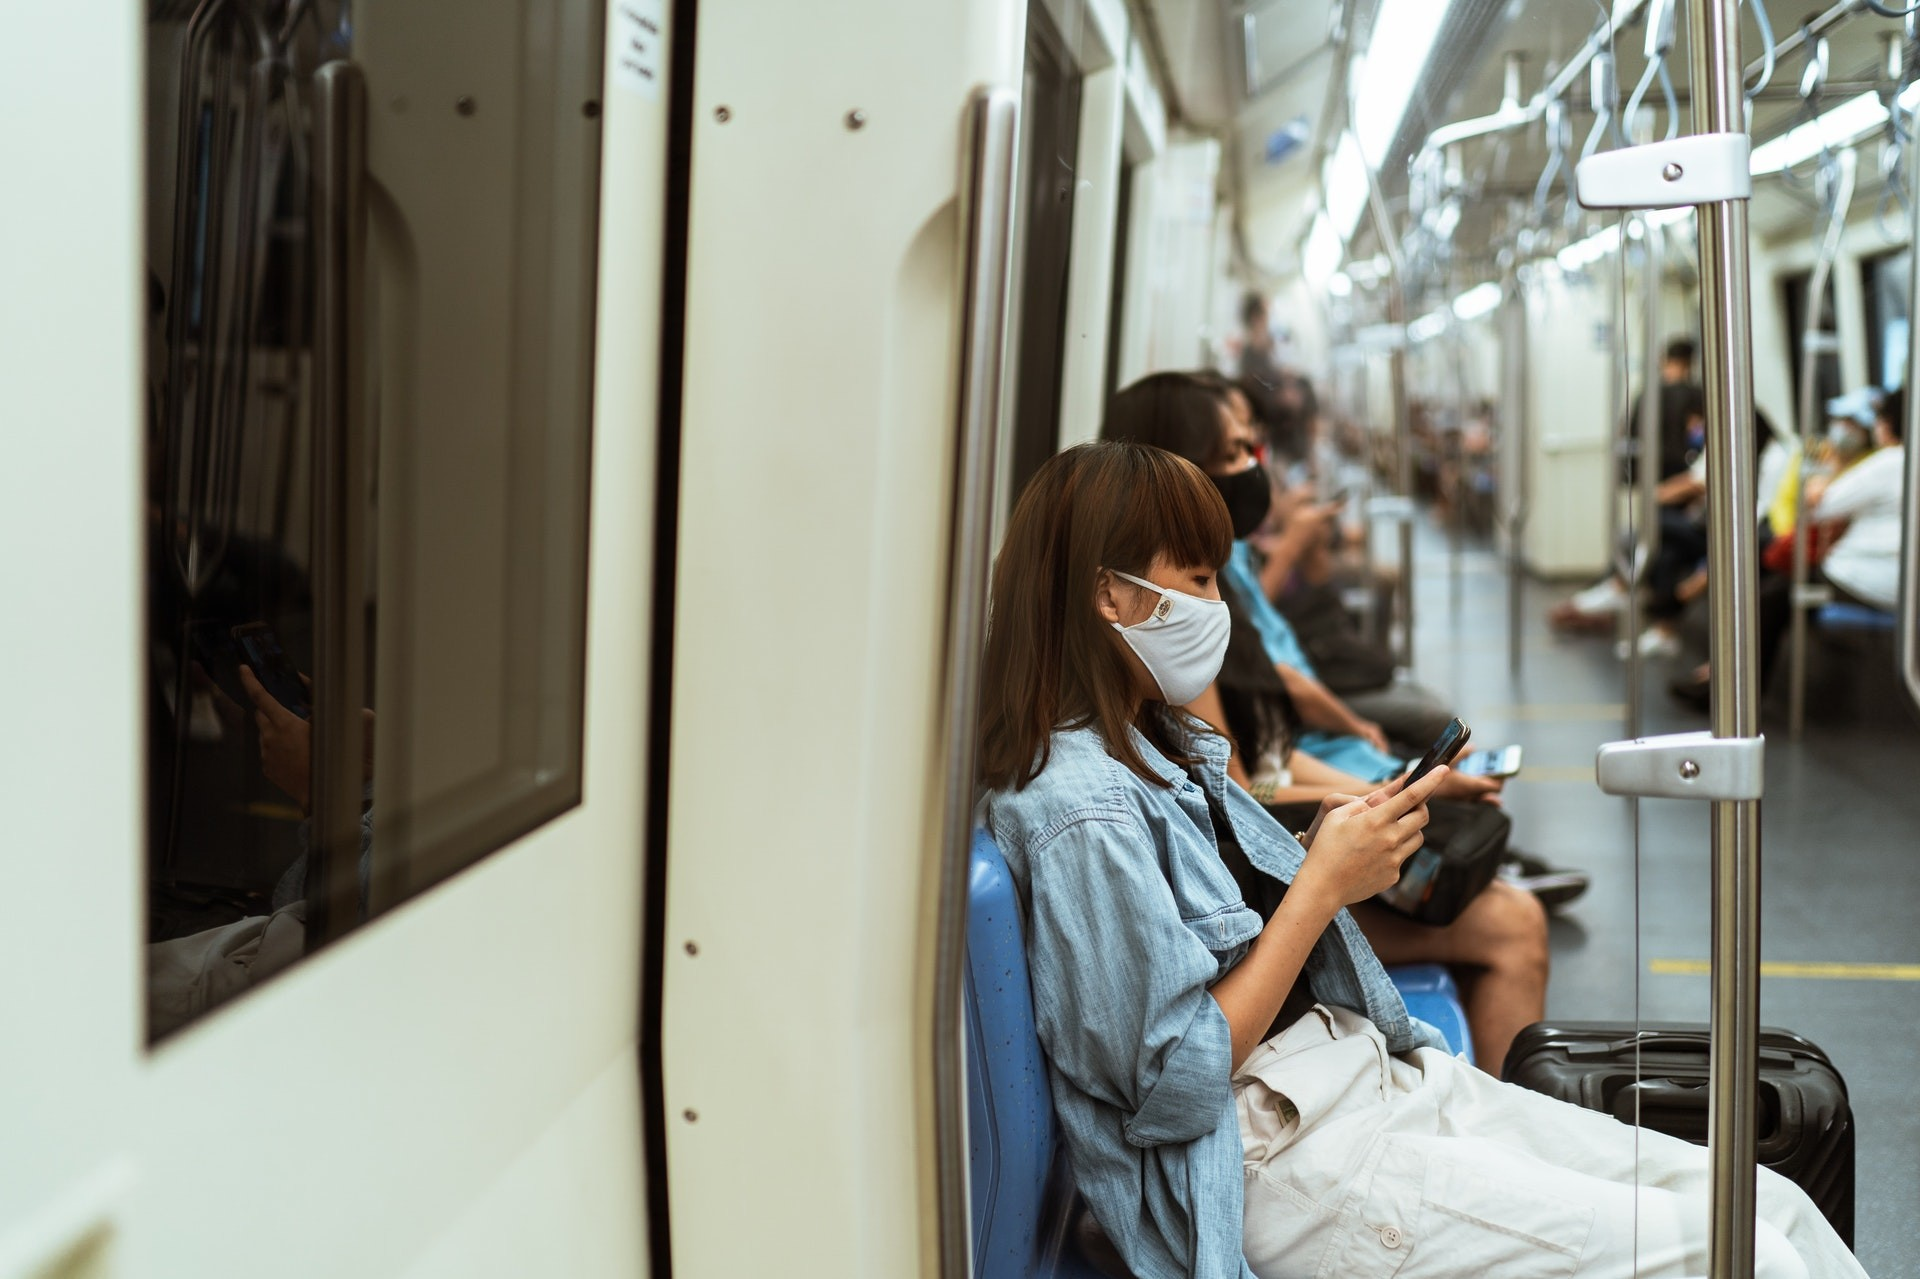 masked people in the subway